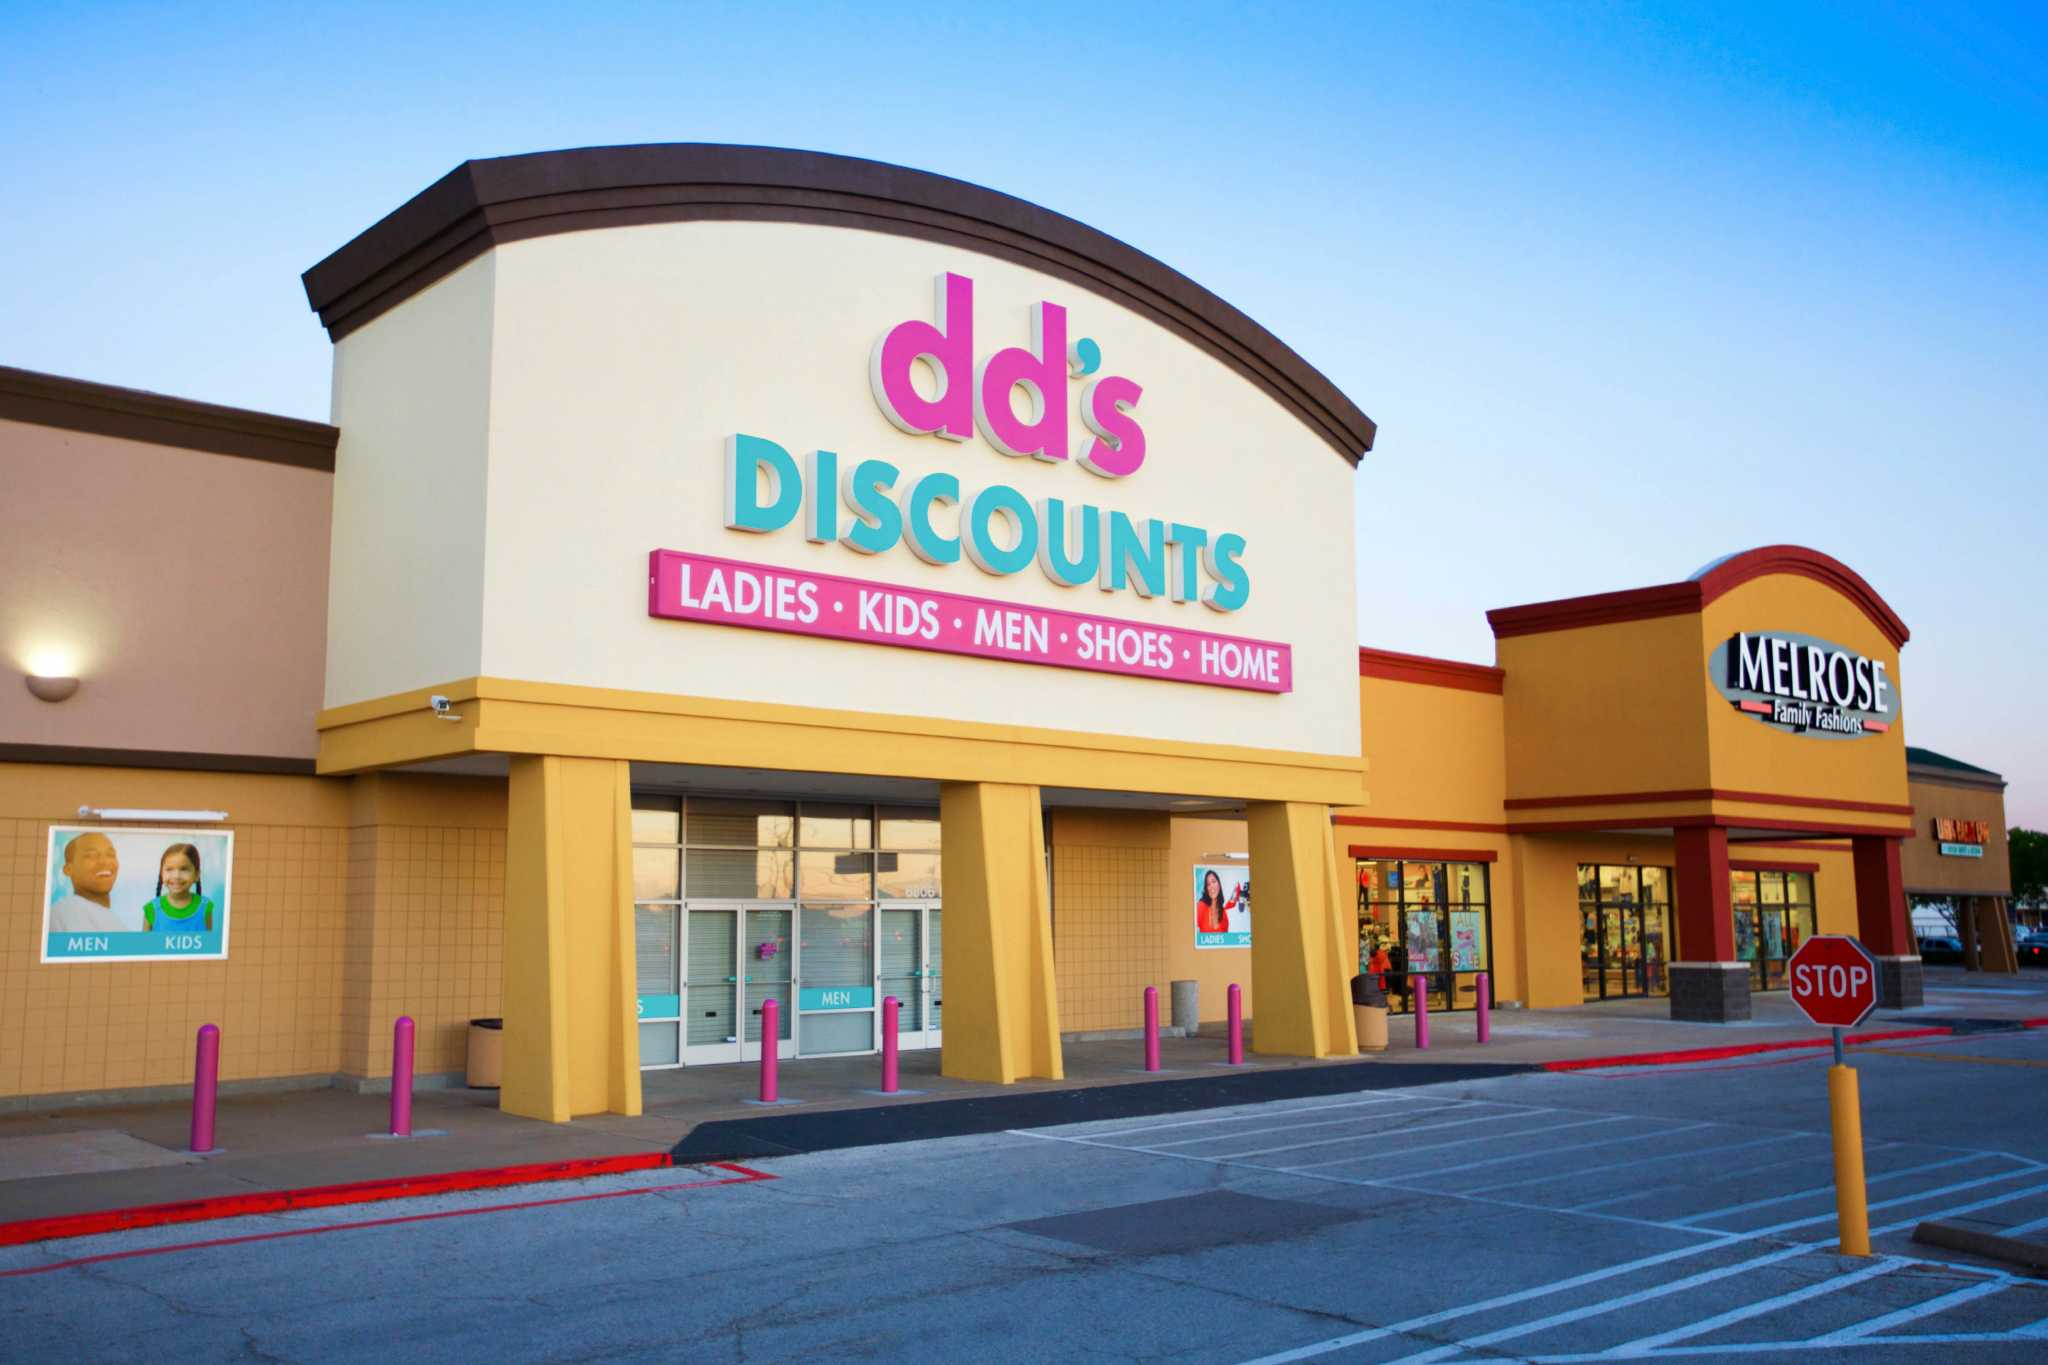 dds discount store. Store ratings and product reviews are written and submitted by online shoppers to assist you as you shop. They do not reflect our opinions. We take no responsibility for the content of ratings and reviews submitted by users. Home Furnishings on Sale %.